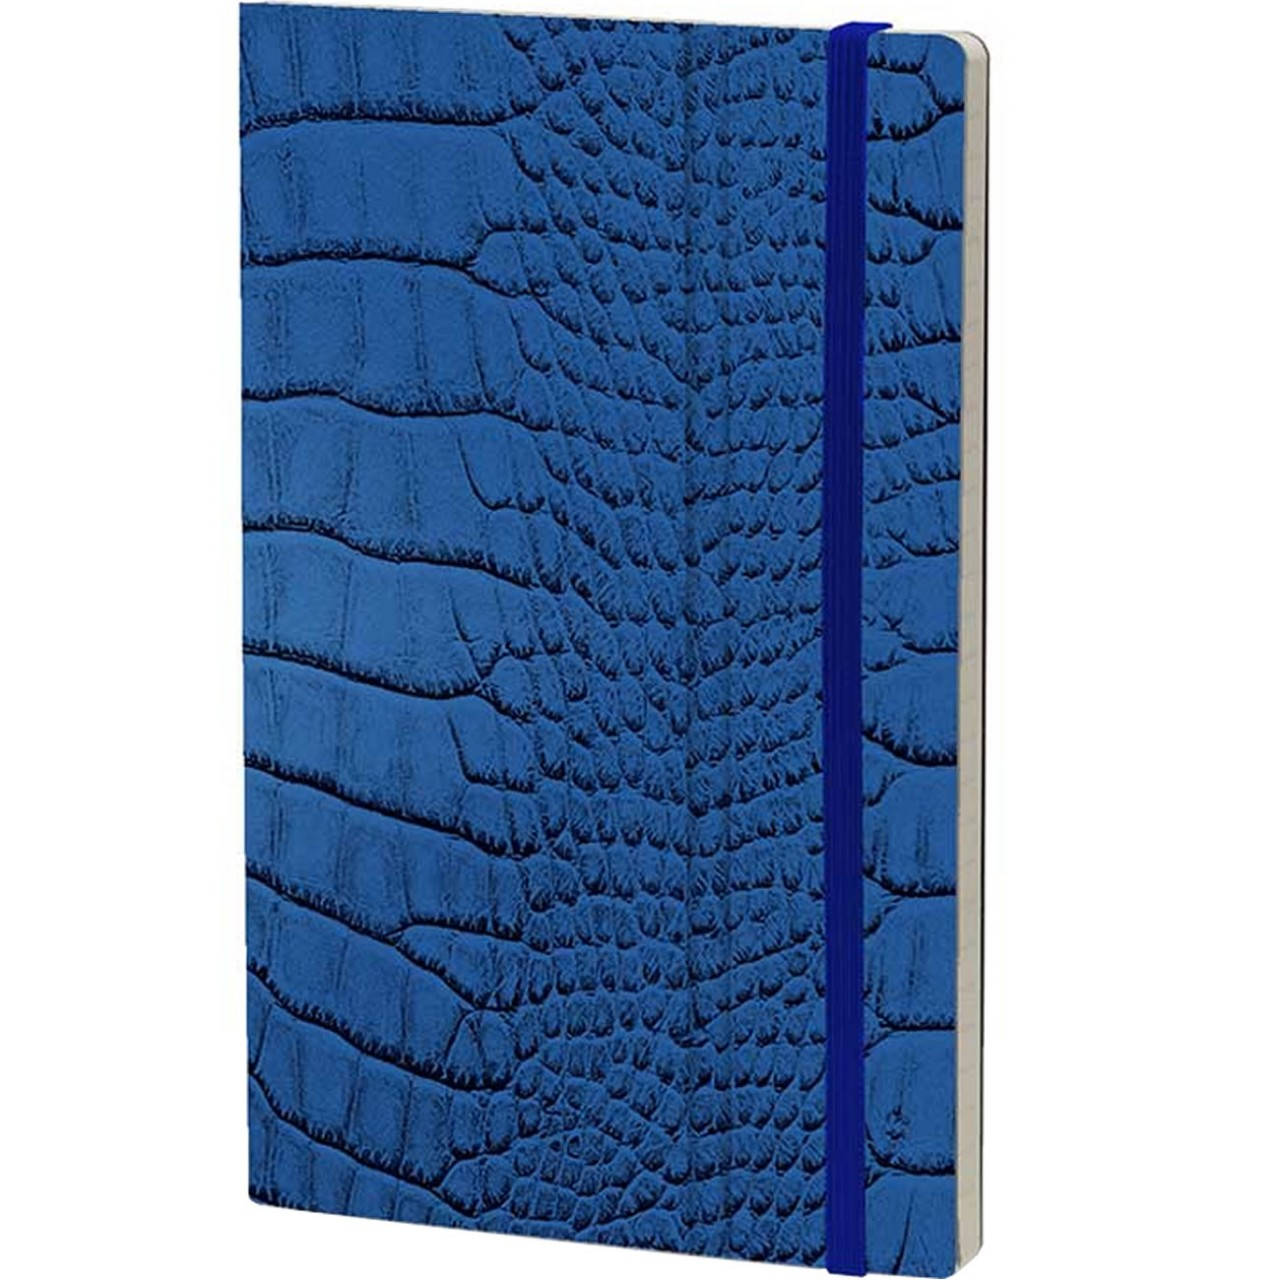 Stifflexible Notizbuch MRS CROCODILE 9 x 14 cm 144 S., BLUE